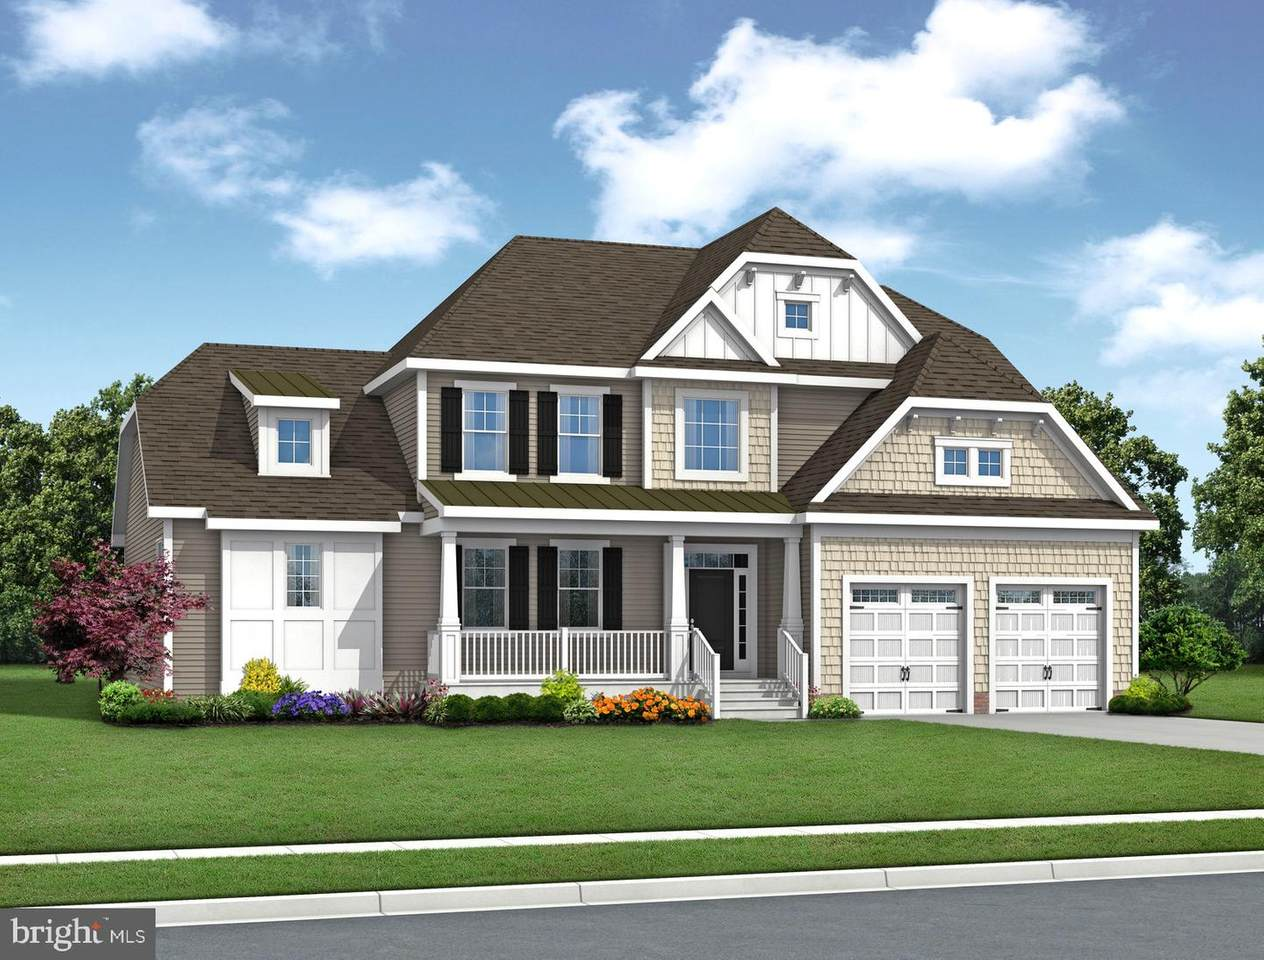 Lot #244 Piping Plover Drive - Photo 1